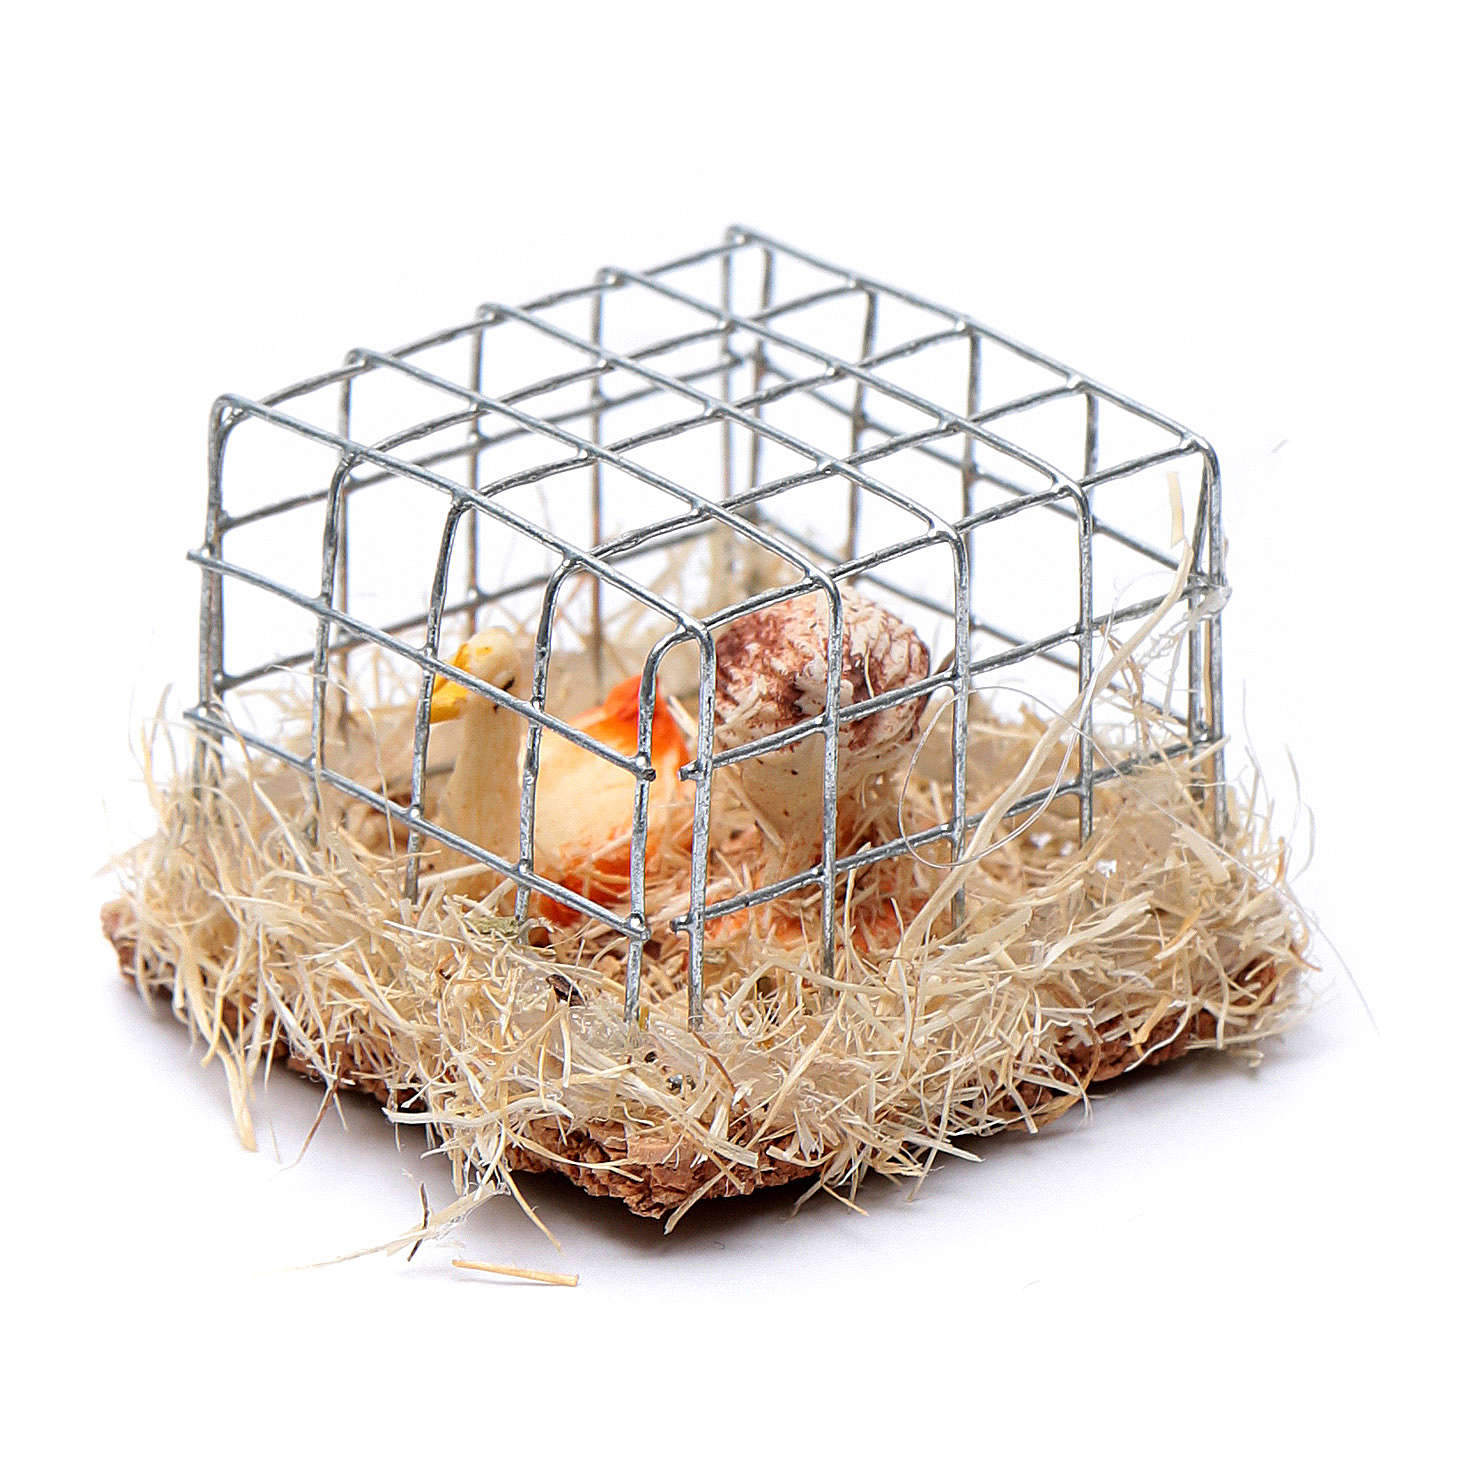 Crib chicken cage 2.5 cm 3